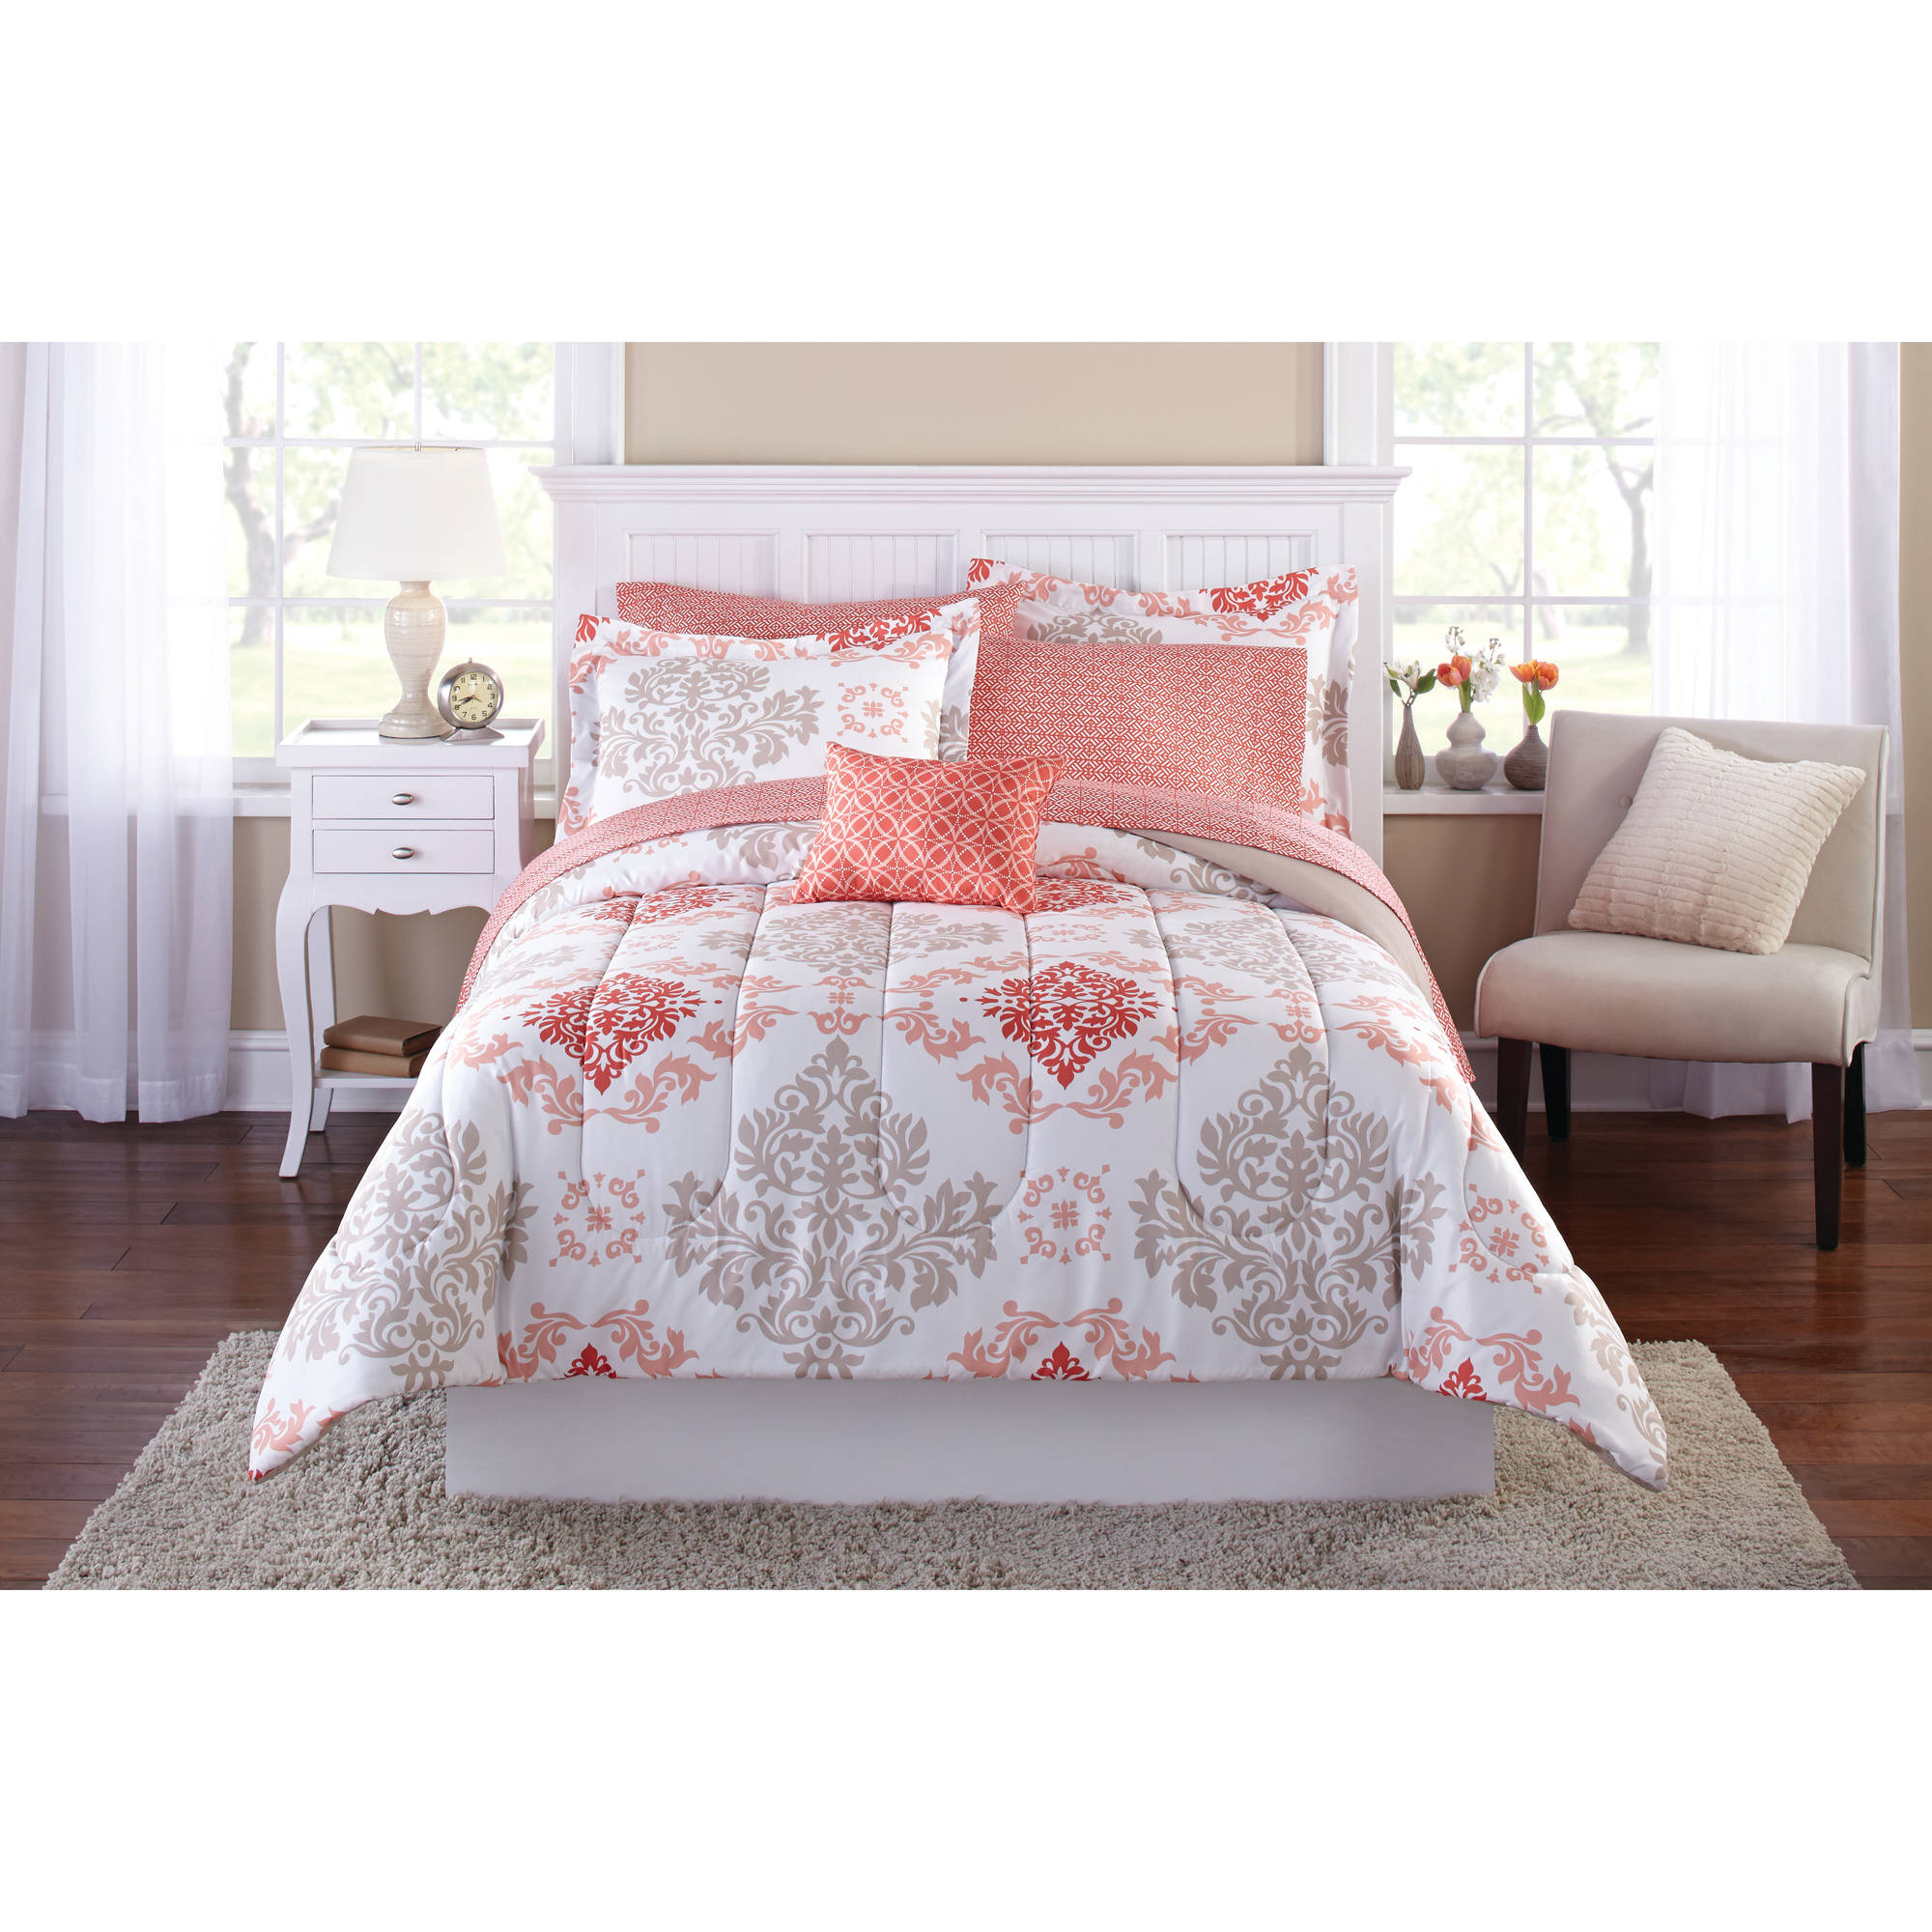 Bedding sets for teenage girls walmart - Bedding Sets For Teenage Girls Walmart 8